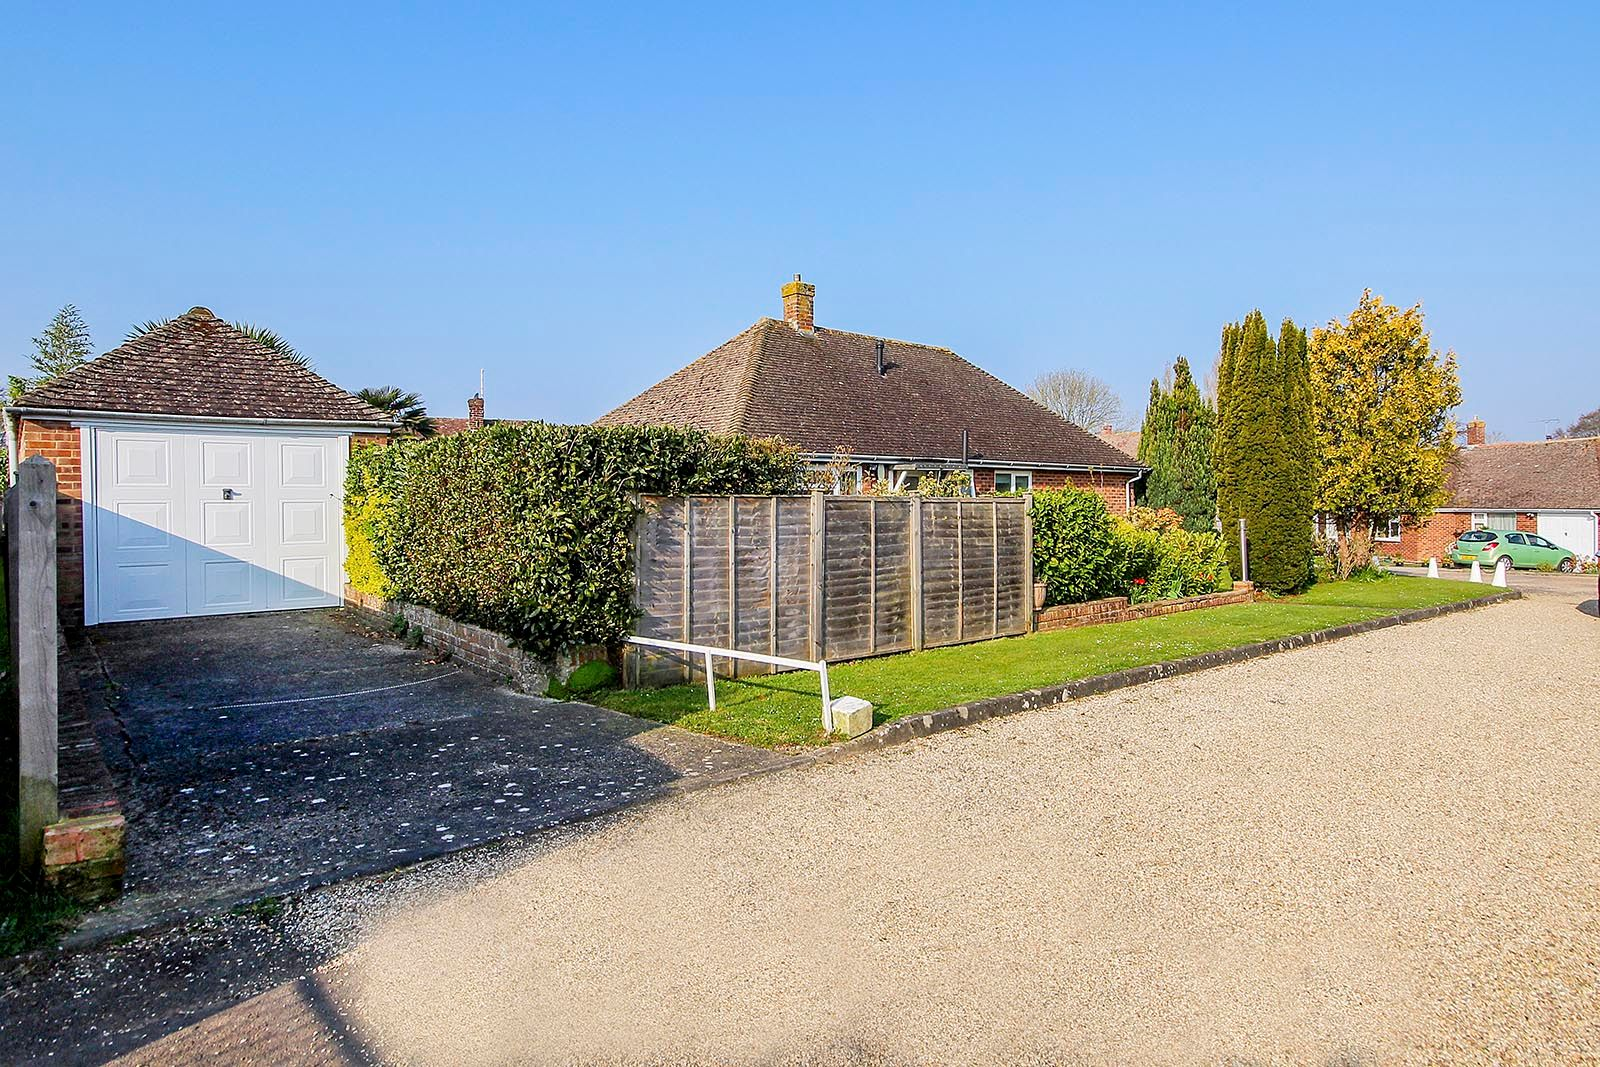 2 bed bungalow for sale in Halliford Drive (COMP AUG 19) 11